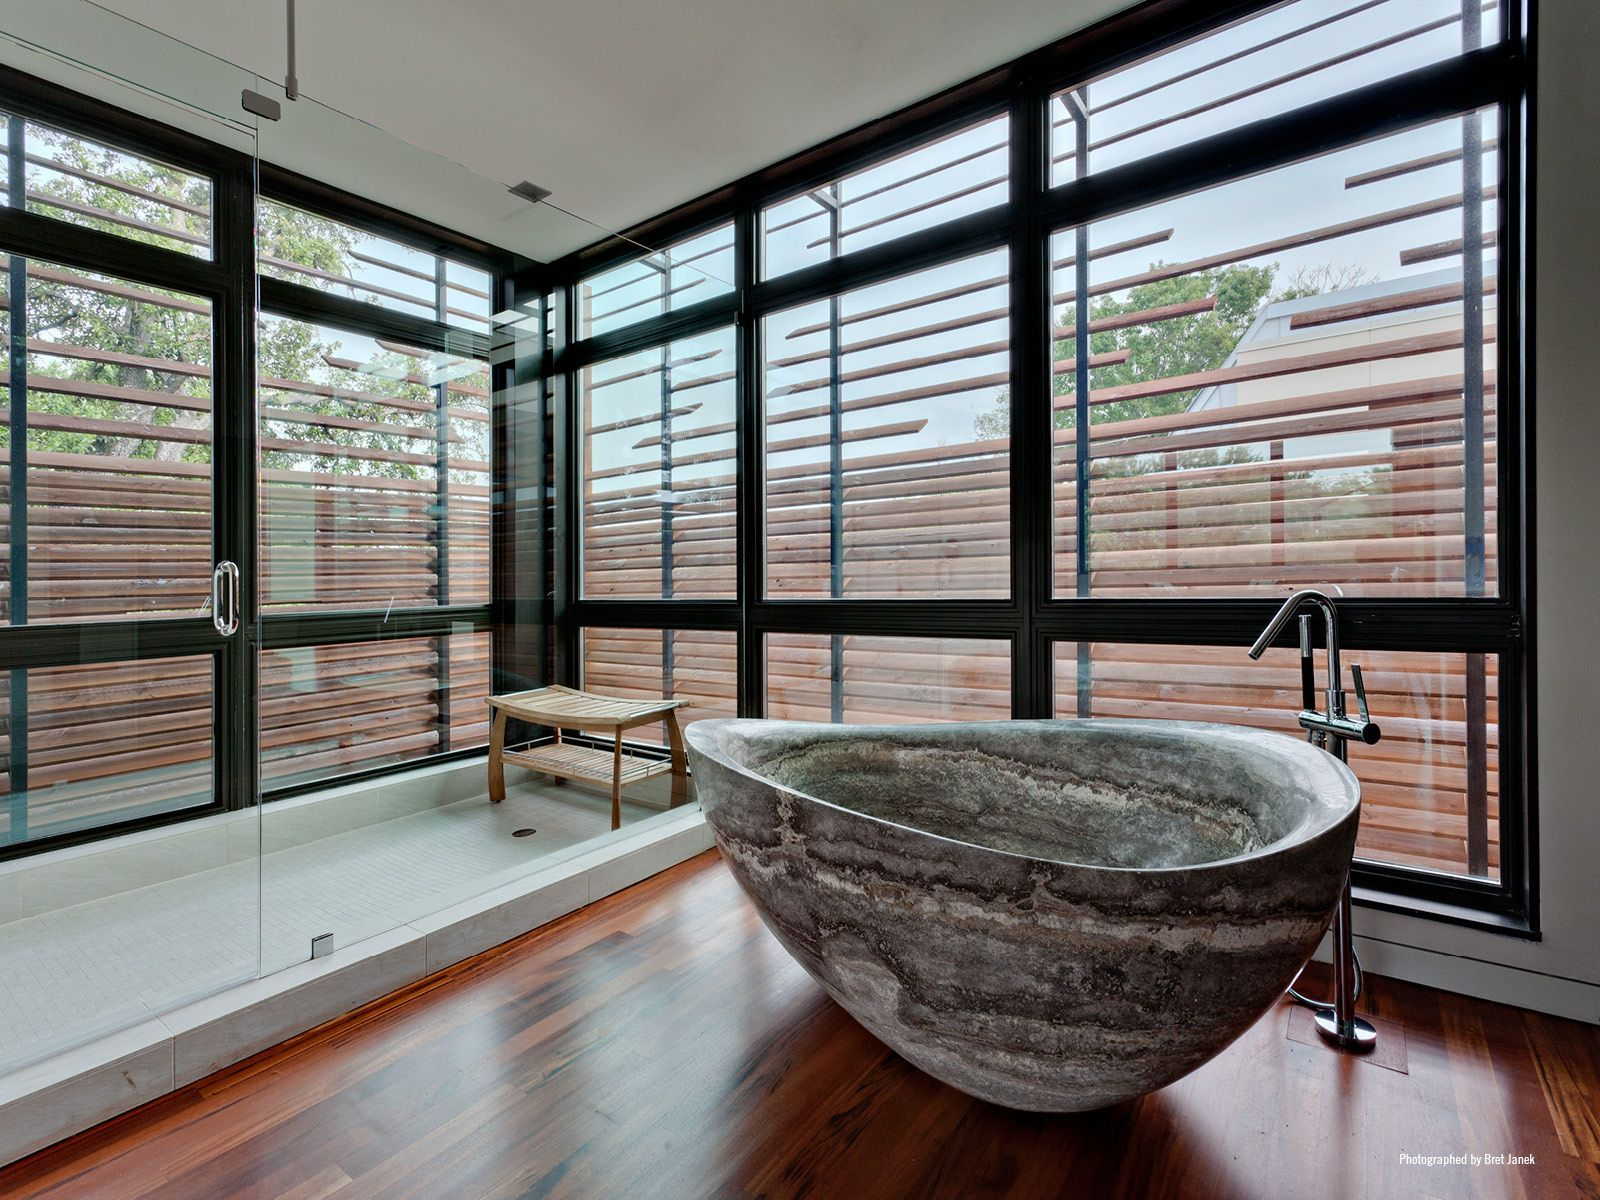 Stone Bathtub In Modern Bathroom At Caruth Boulevard House In Dallas By Tom  Reisenbichler